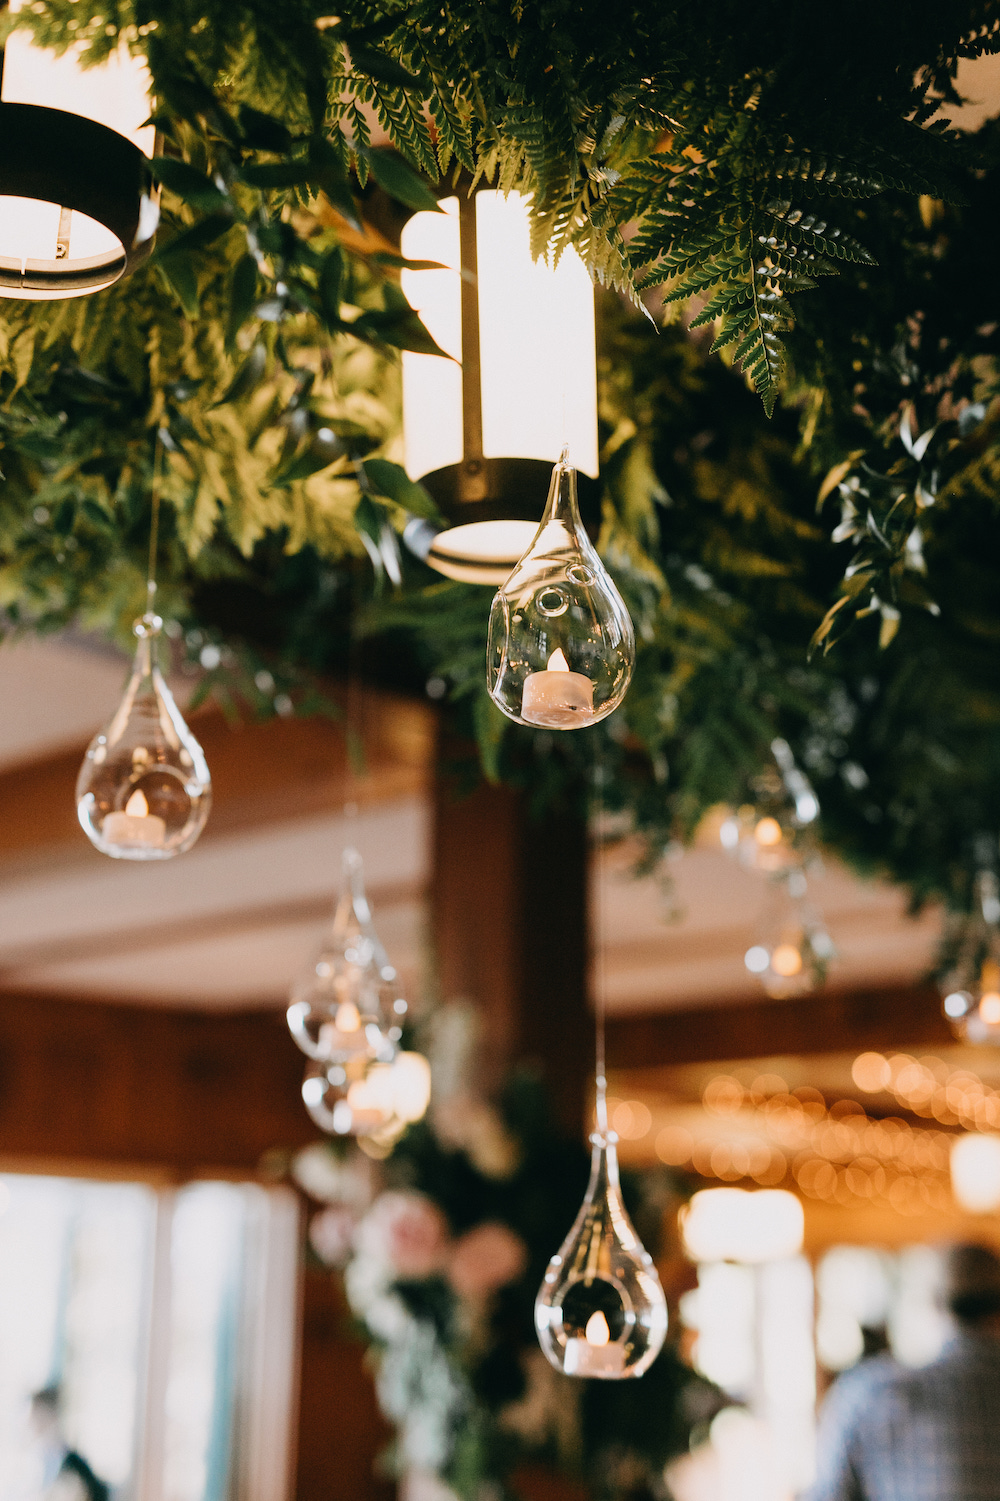 Greenery and hanging glass bulbs hanging above tabletops.